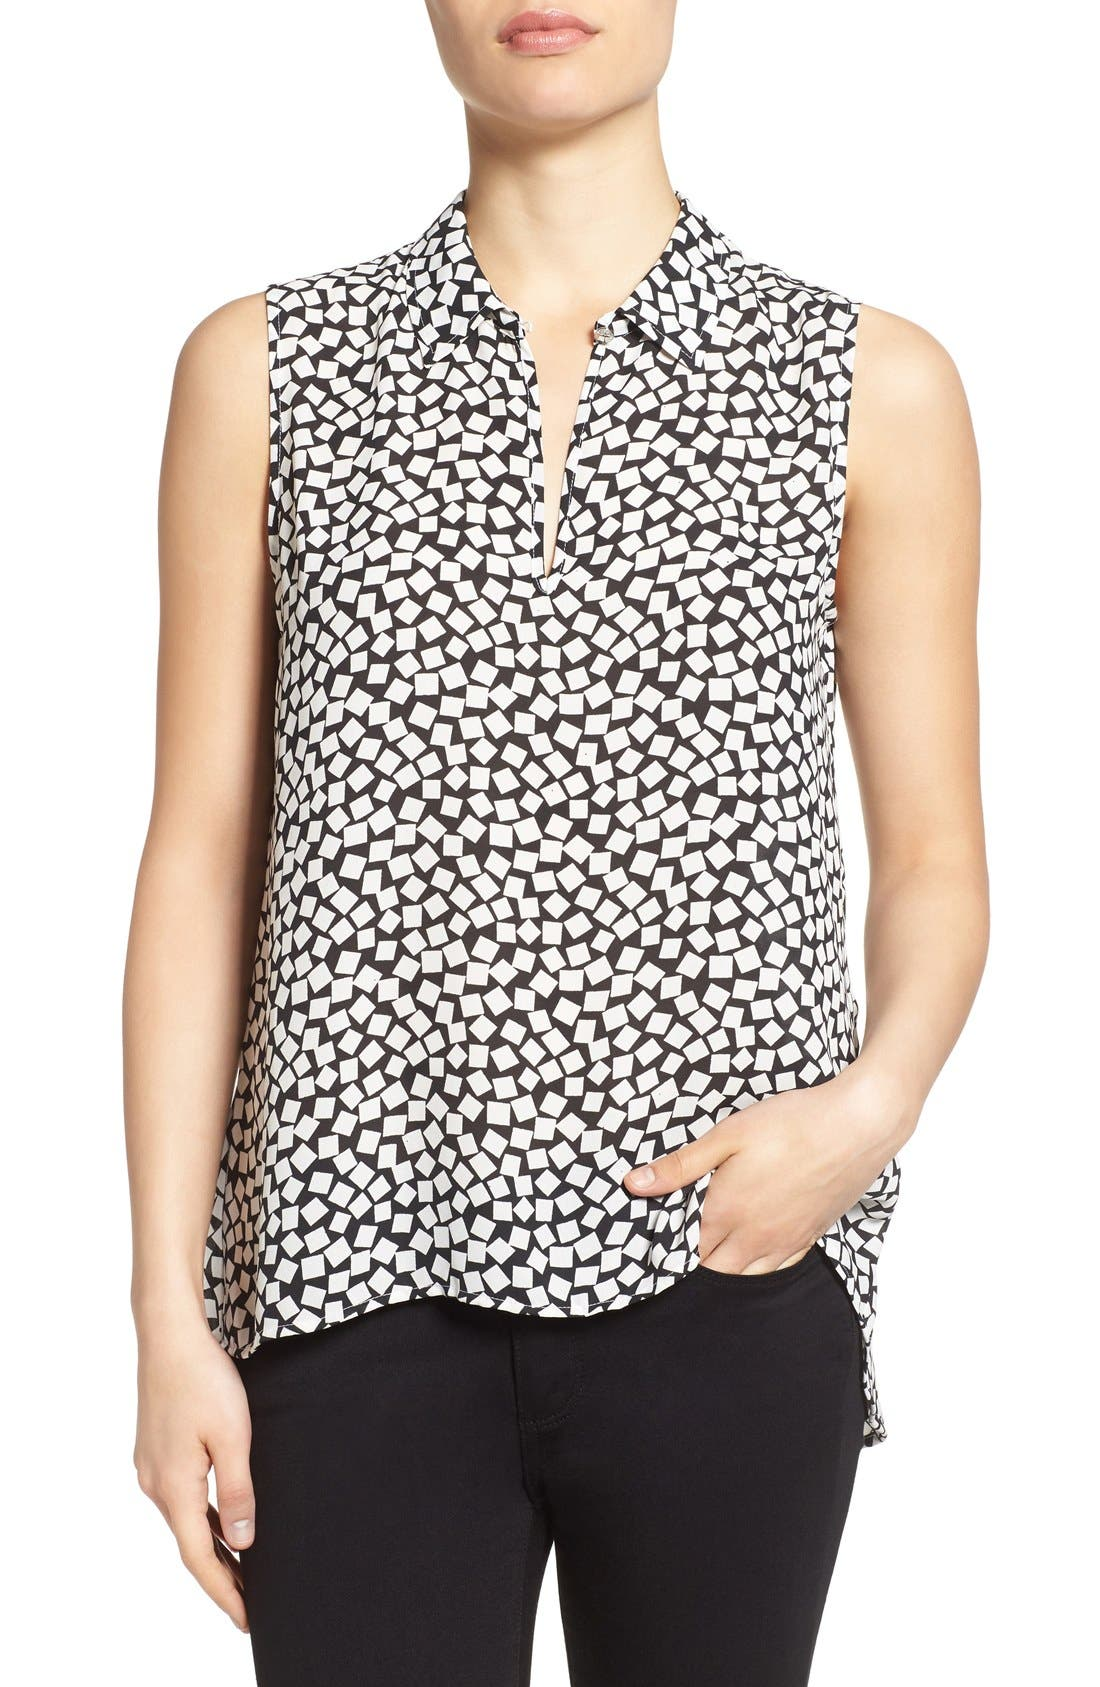 Alternate Image 1 Selected - Vince Camuto Print Collared Keyhole Neck Sleeveless Blouse